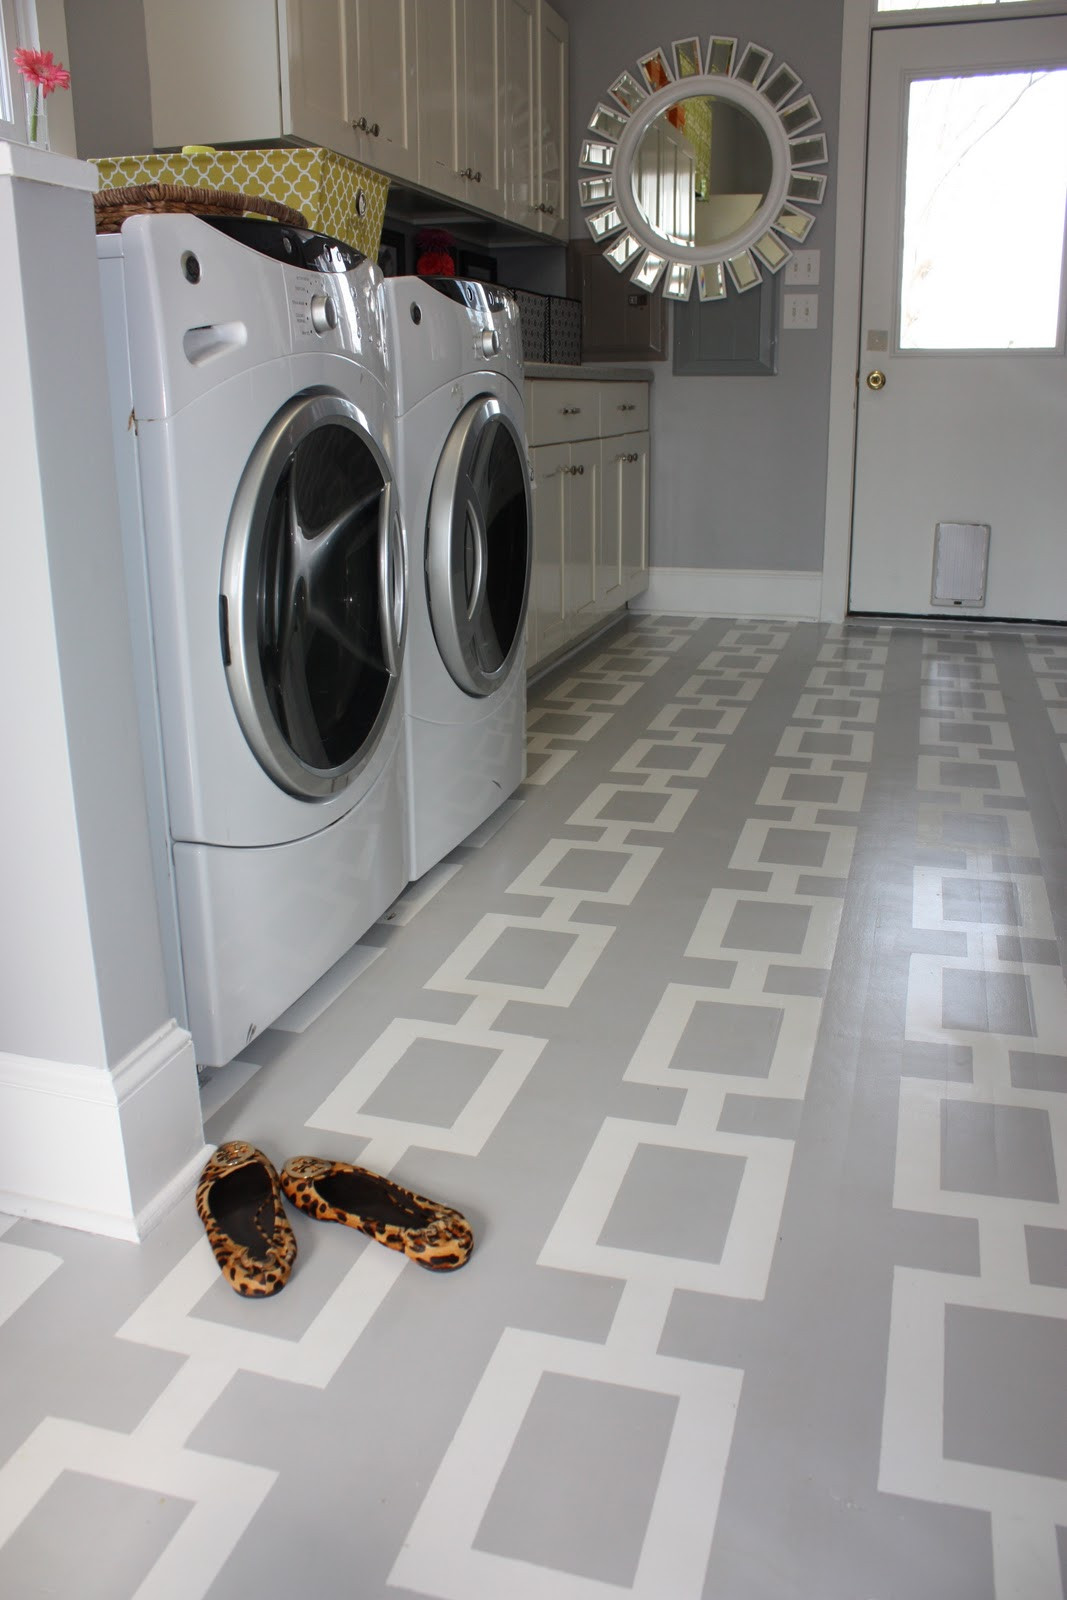 Best ideas about Laundry Room Flooring . Save or Pin Birds A Feather f the Chain Laundry Room Now.